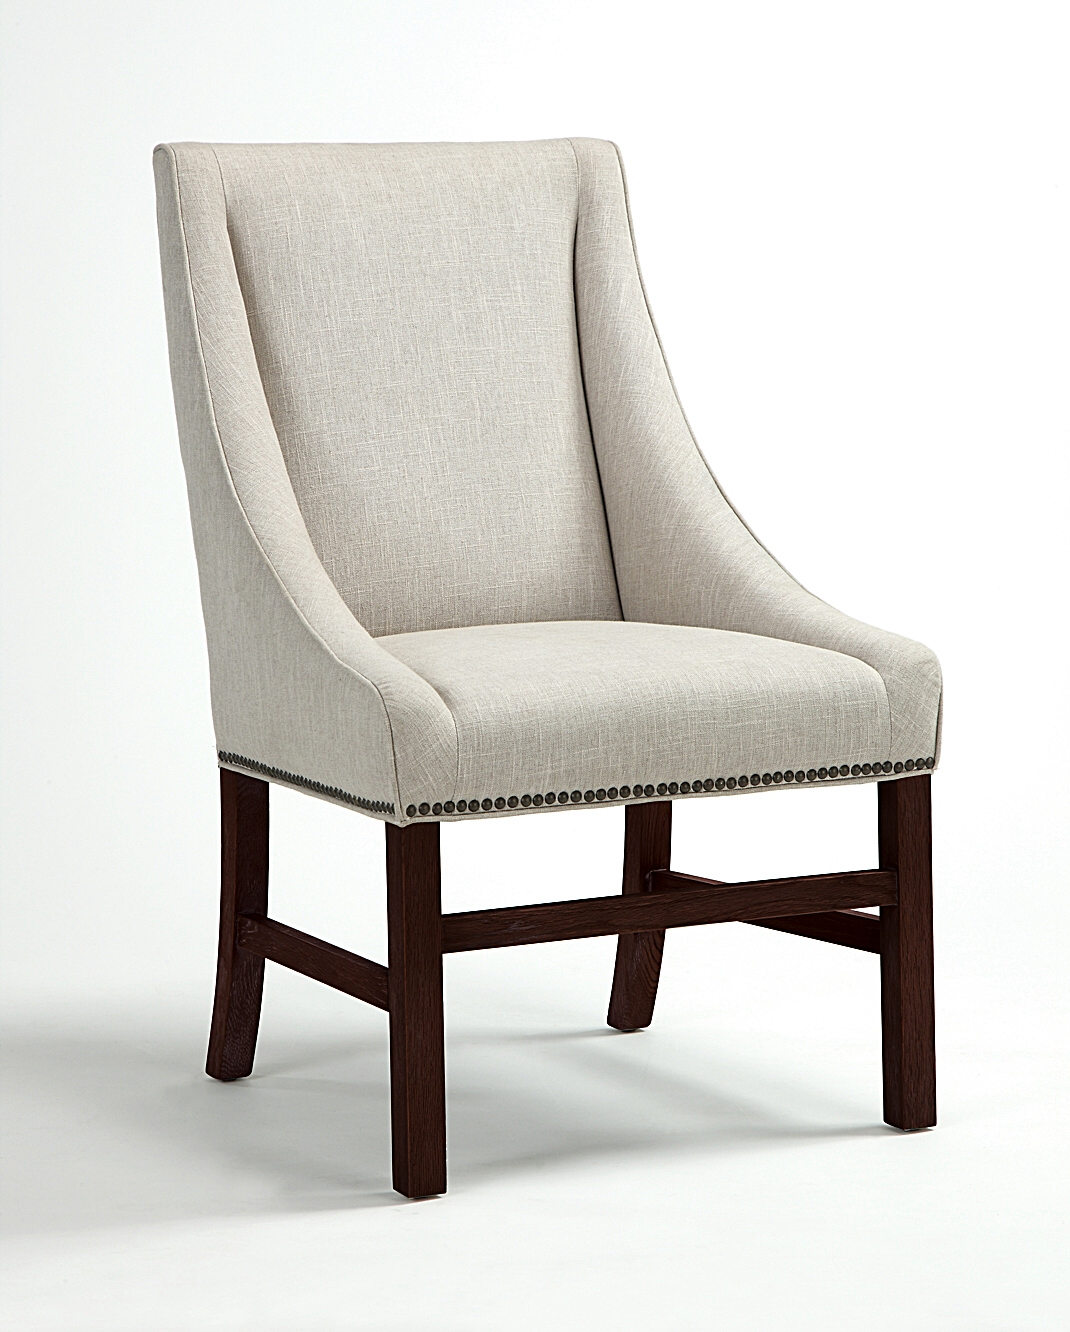 upholstered dining chair brownstone furniture cavallini upholstered dining chair dining chair